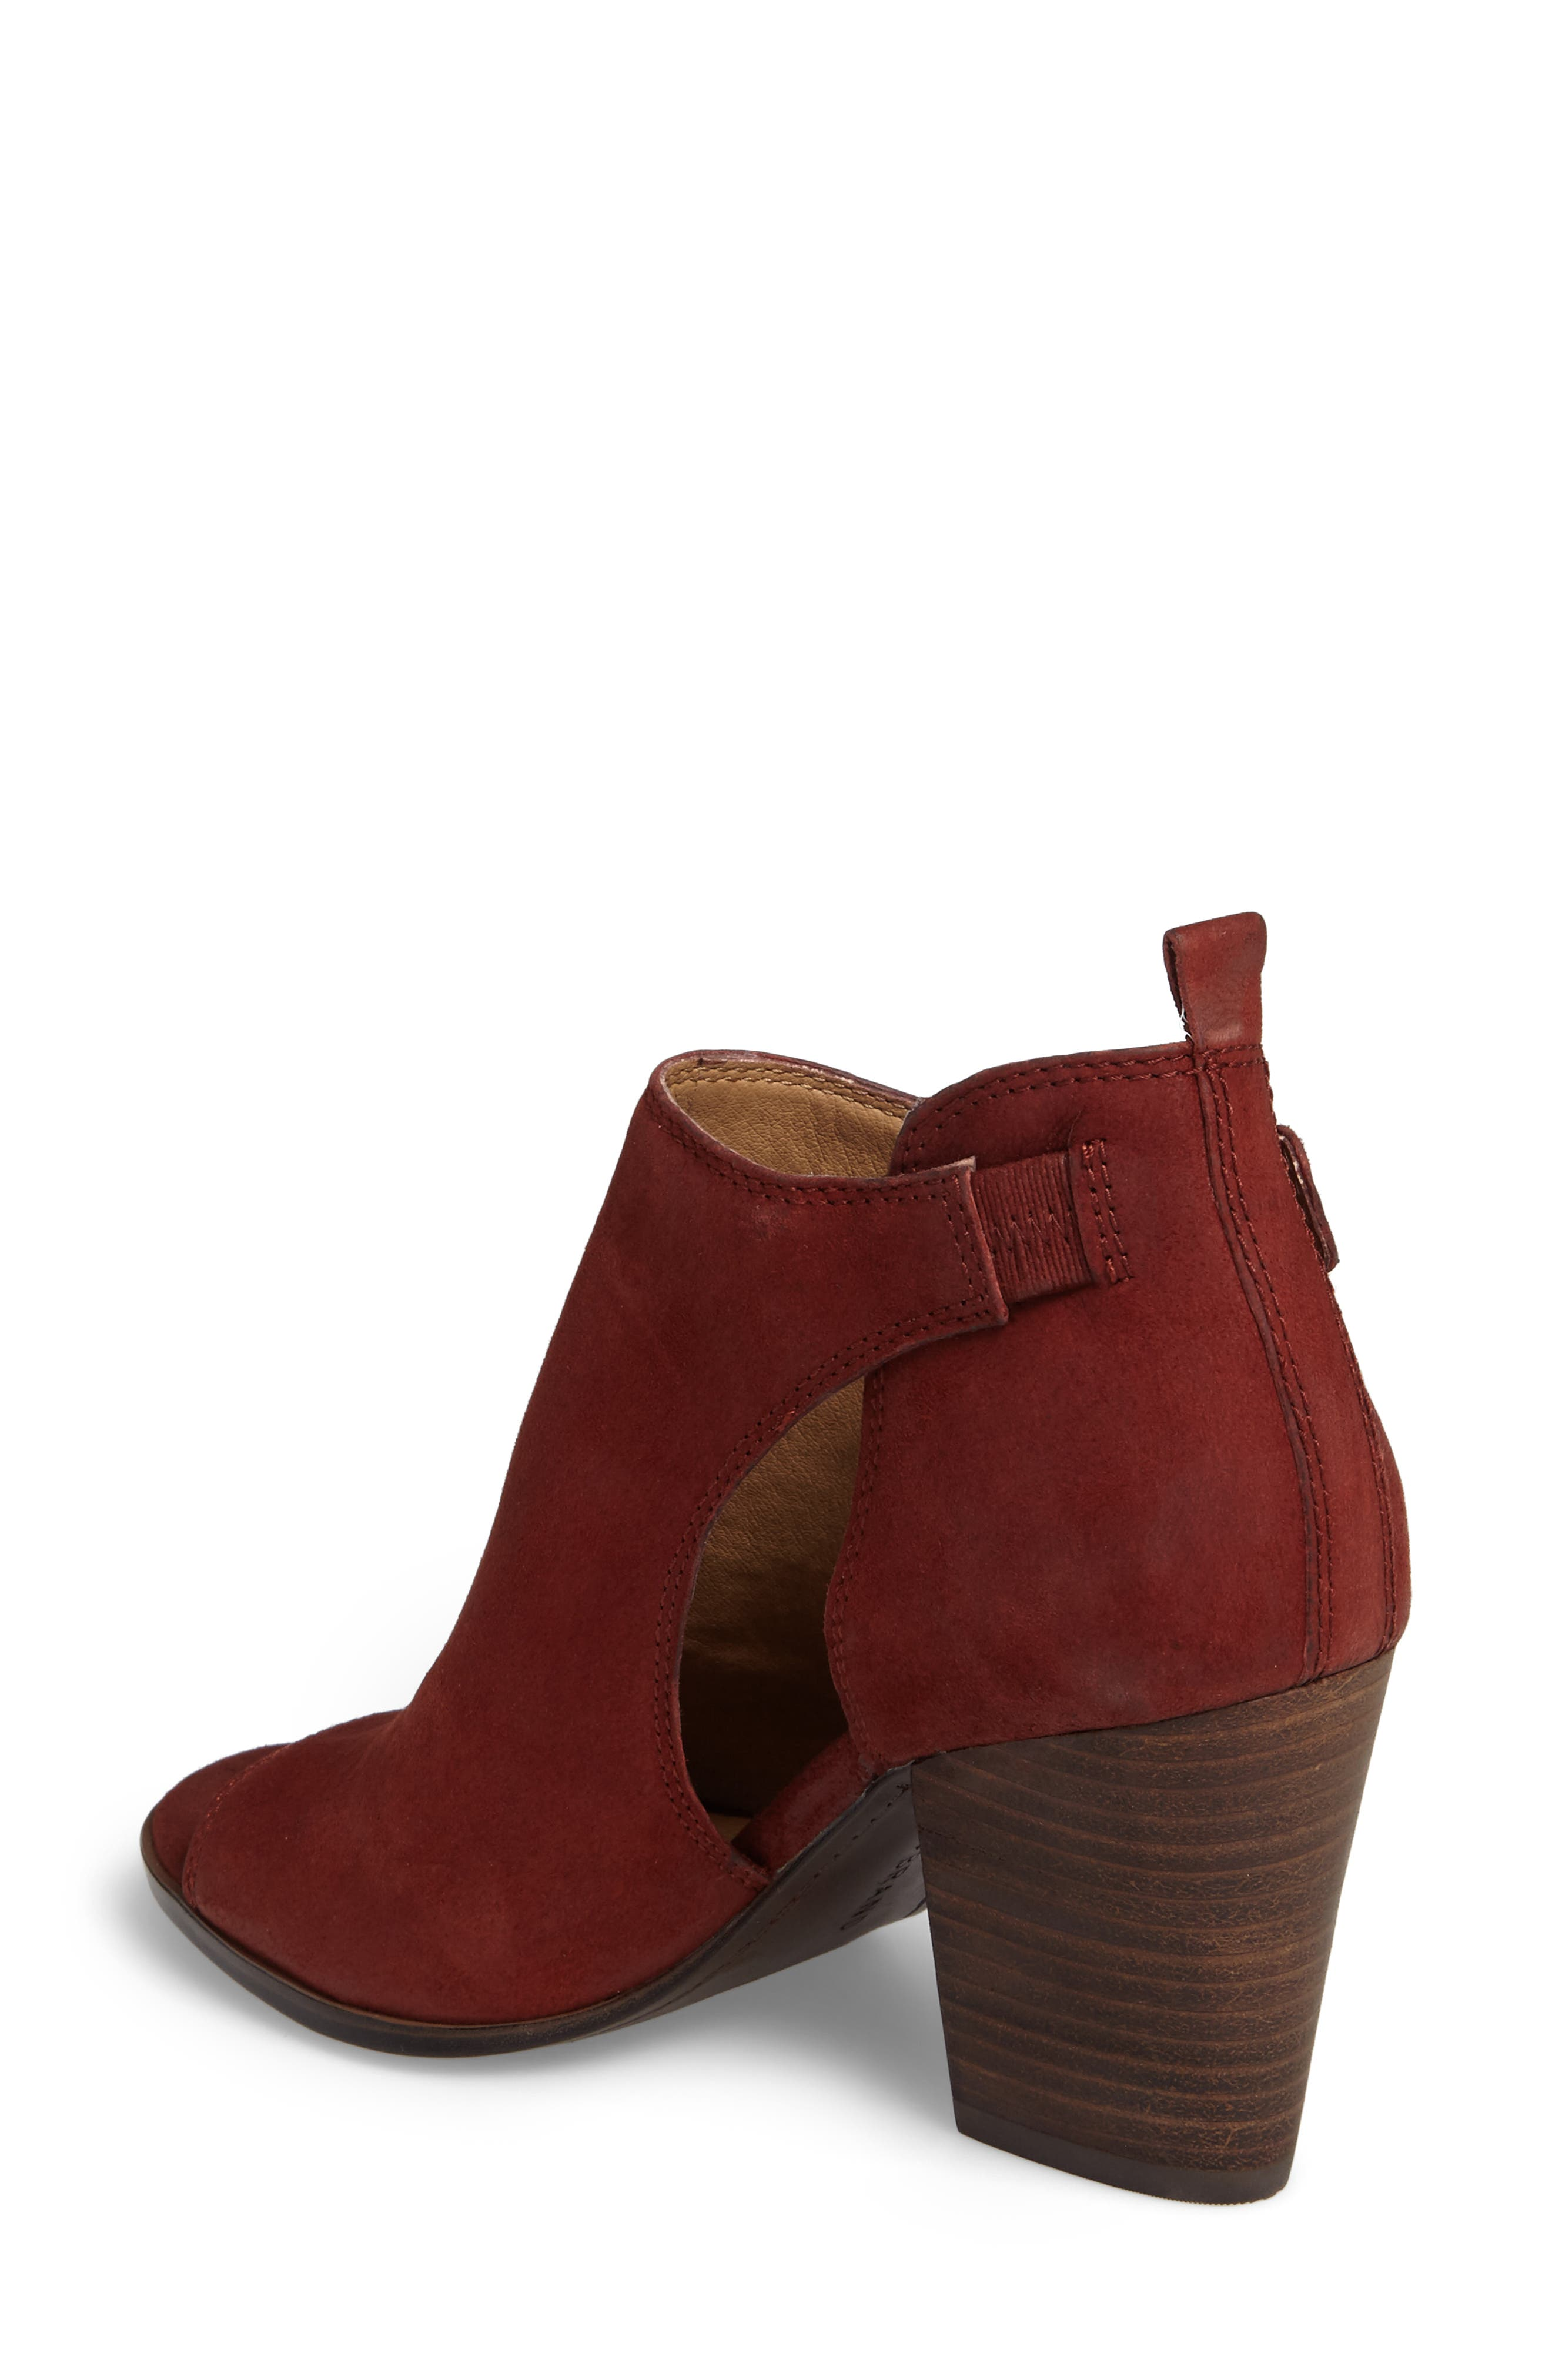 Oona Open Side Bootie,                             Alternate thumbnail 2, color,                             Sable Leather